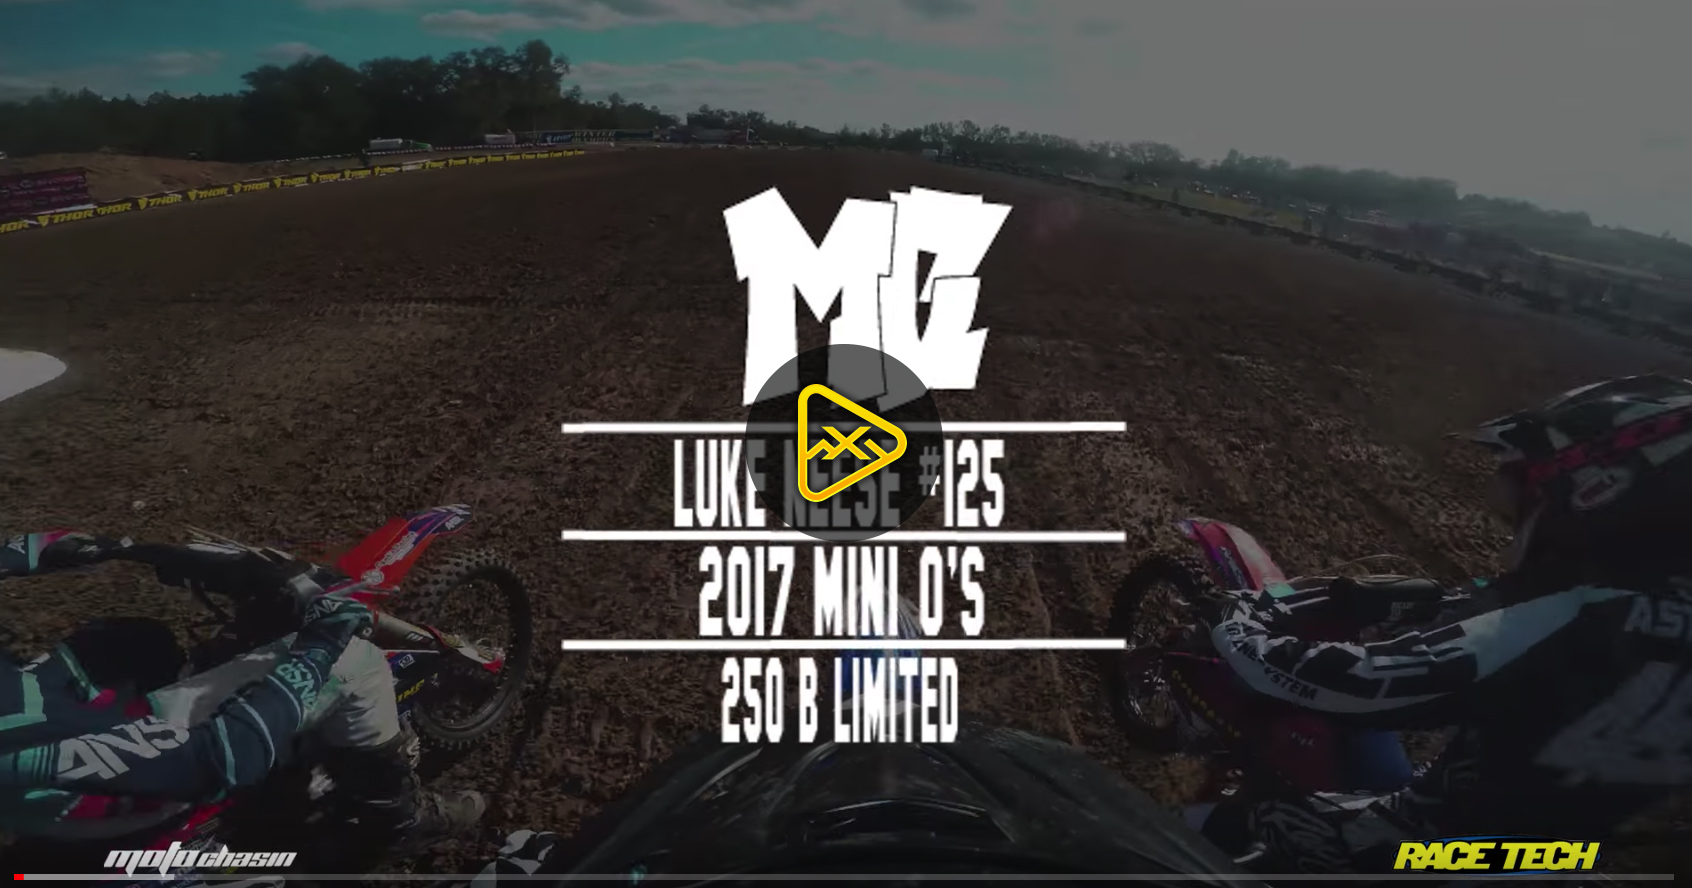 Helmet Cam: Luke Neese in 250 B Limited at Mini O's